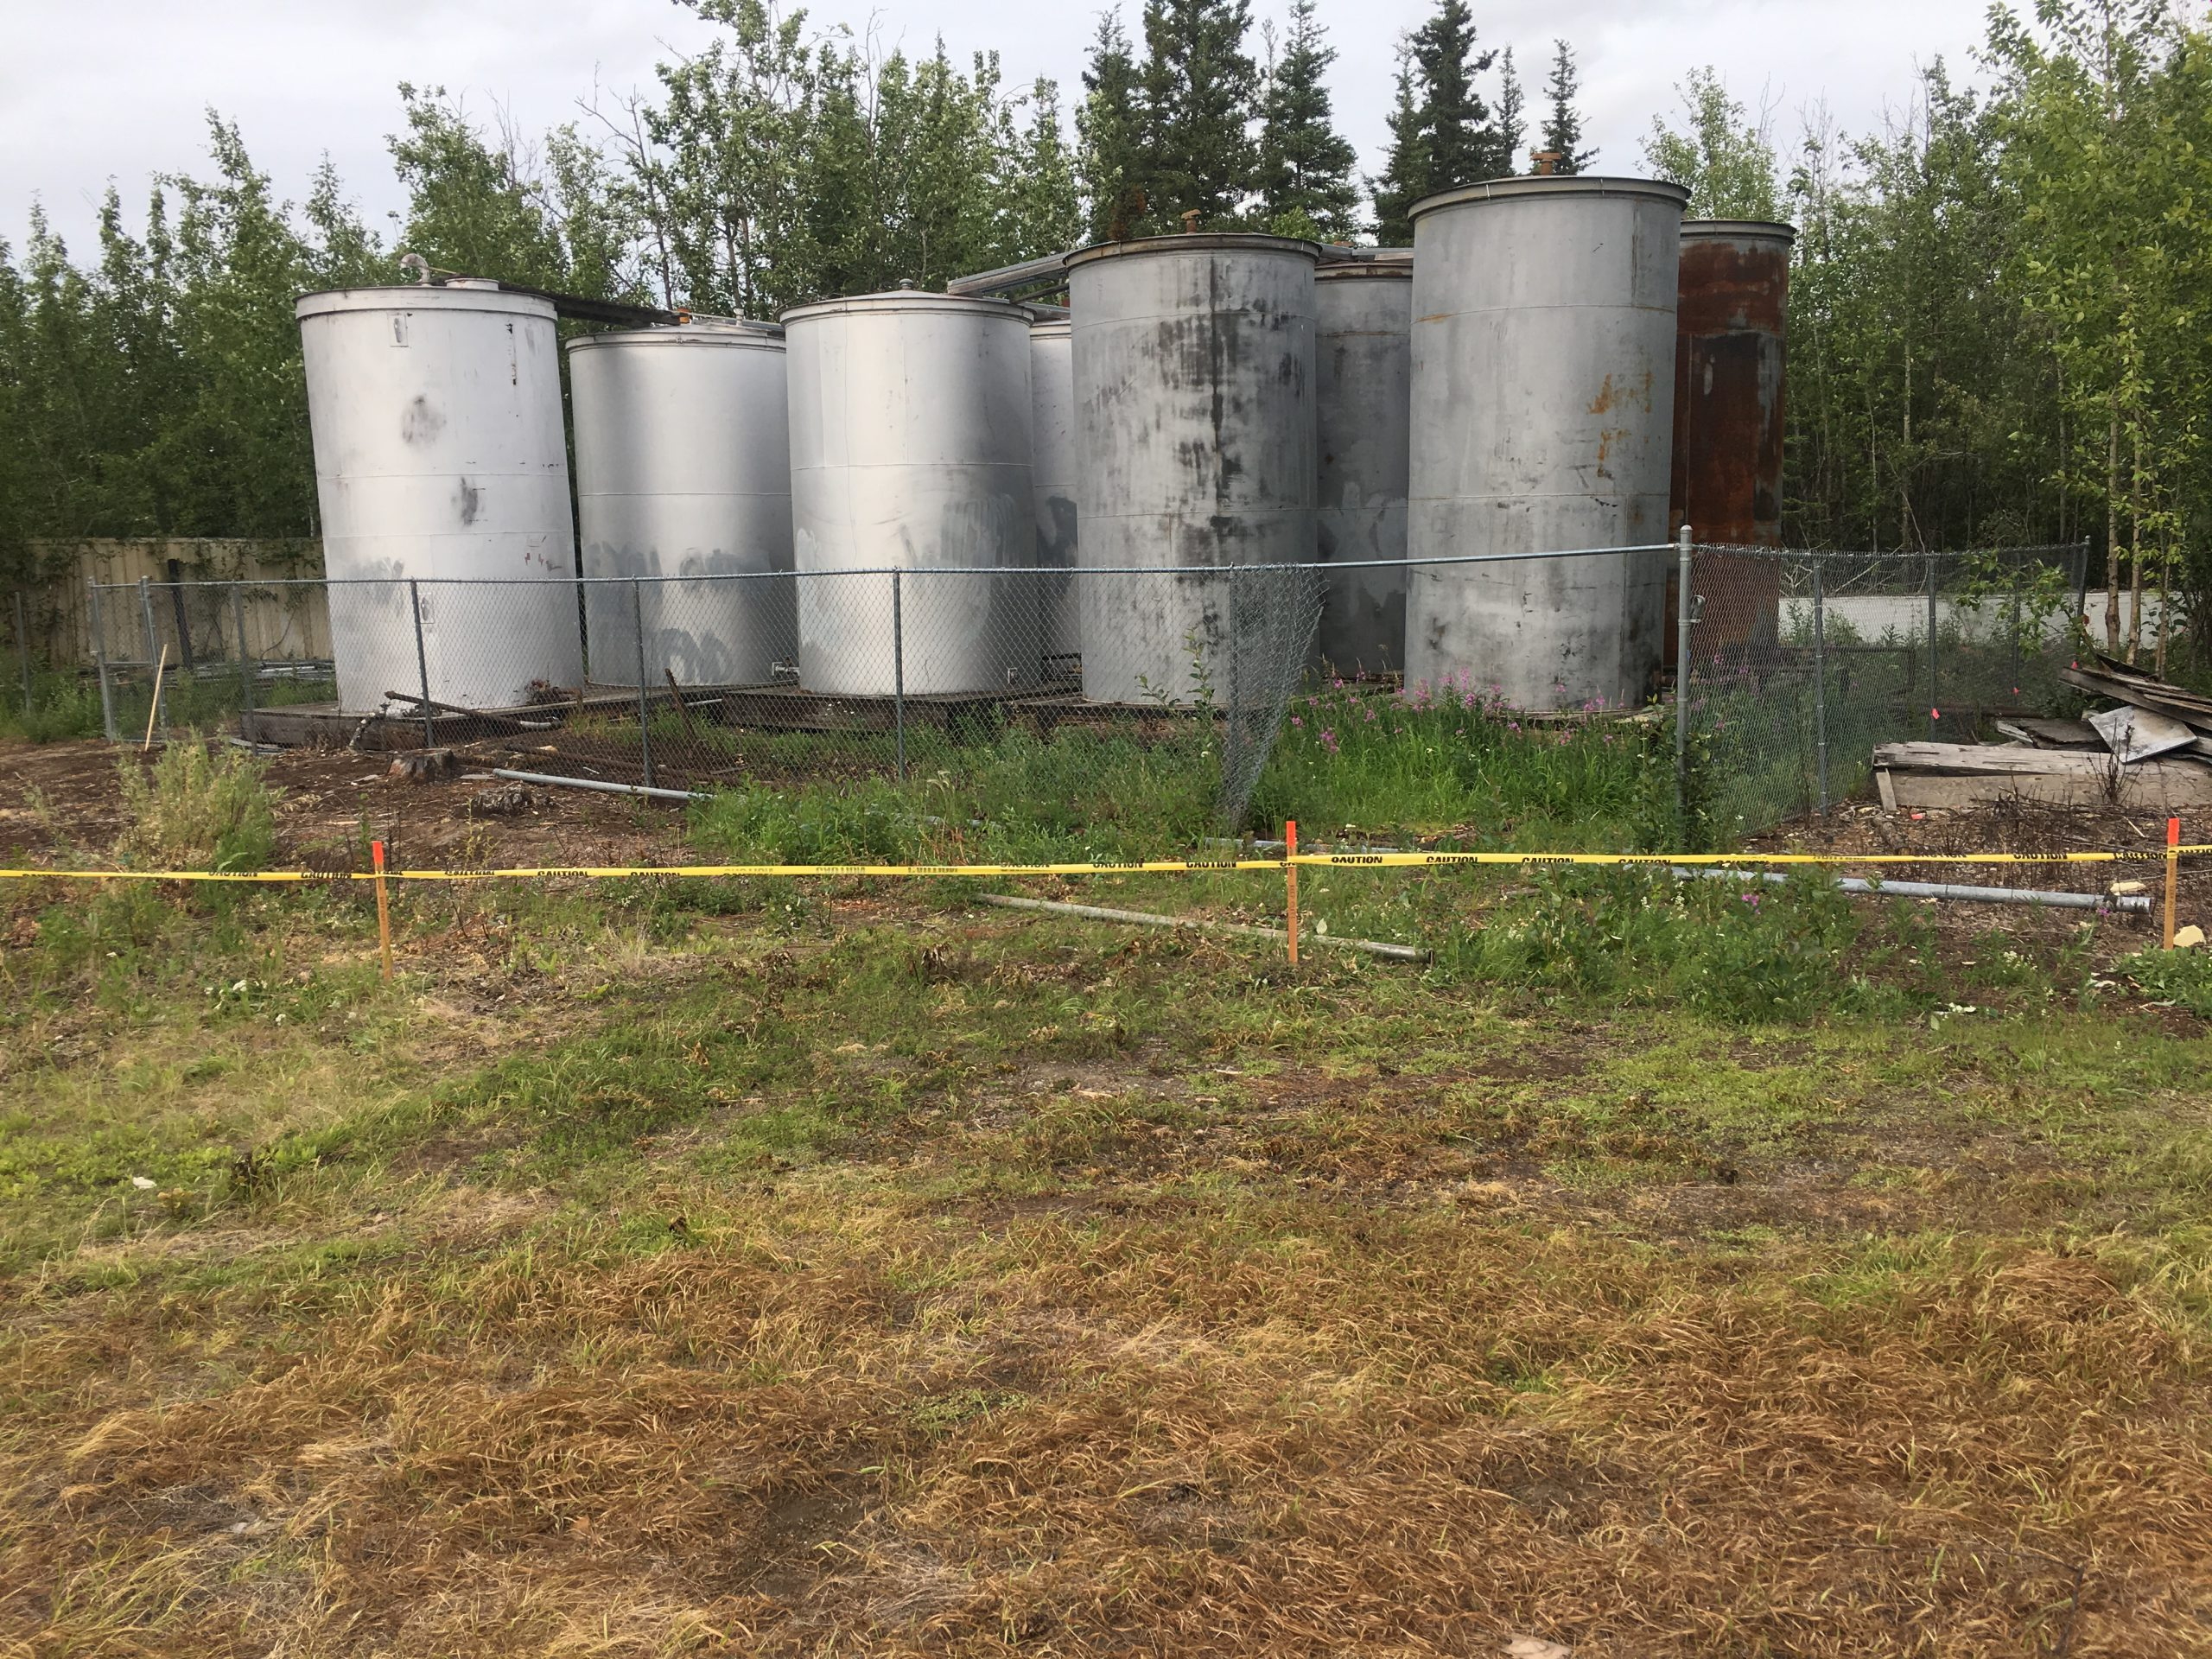 Rural Tank Farms